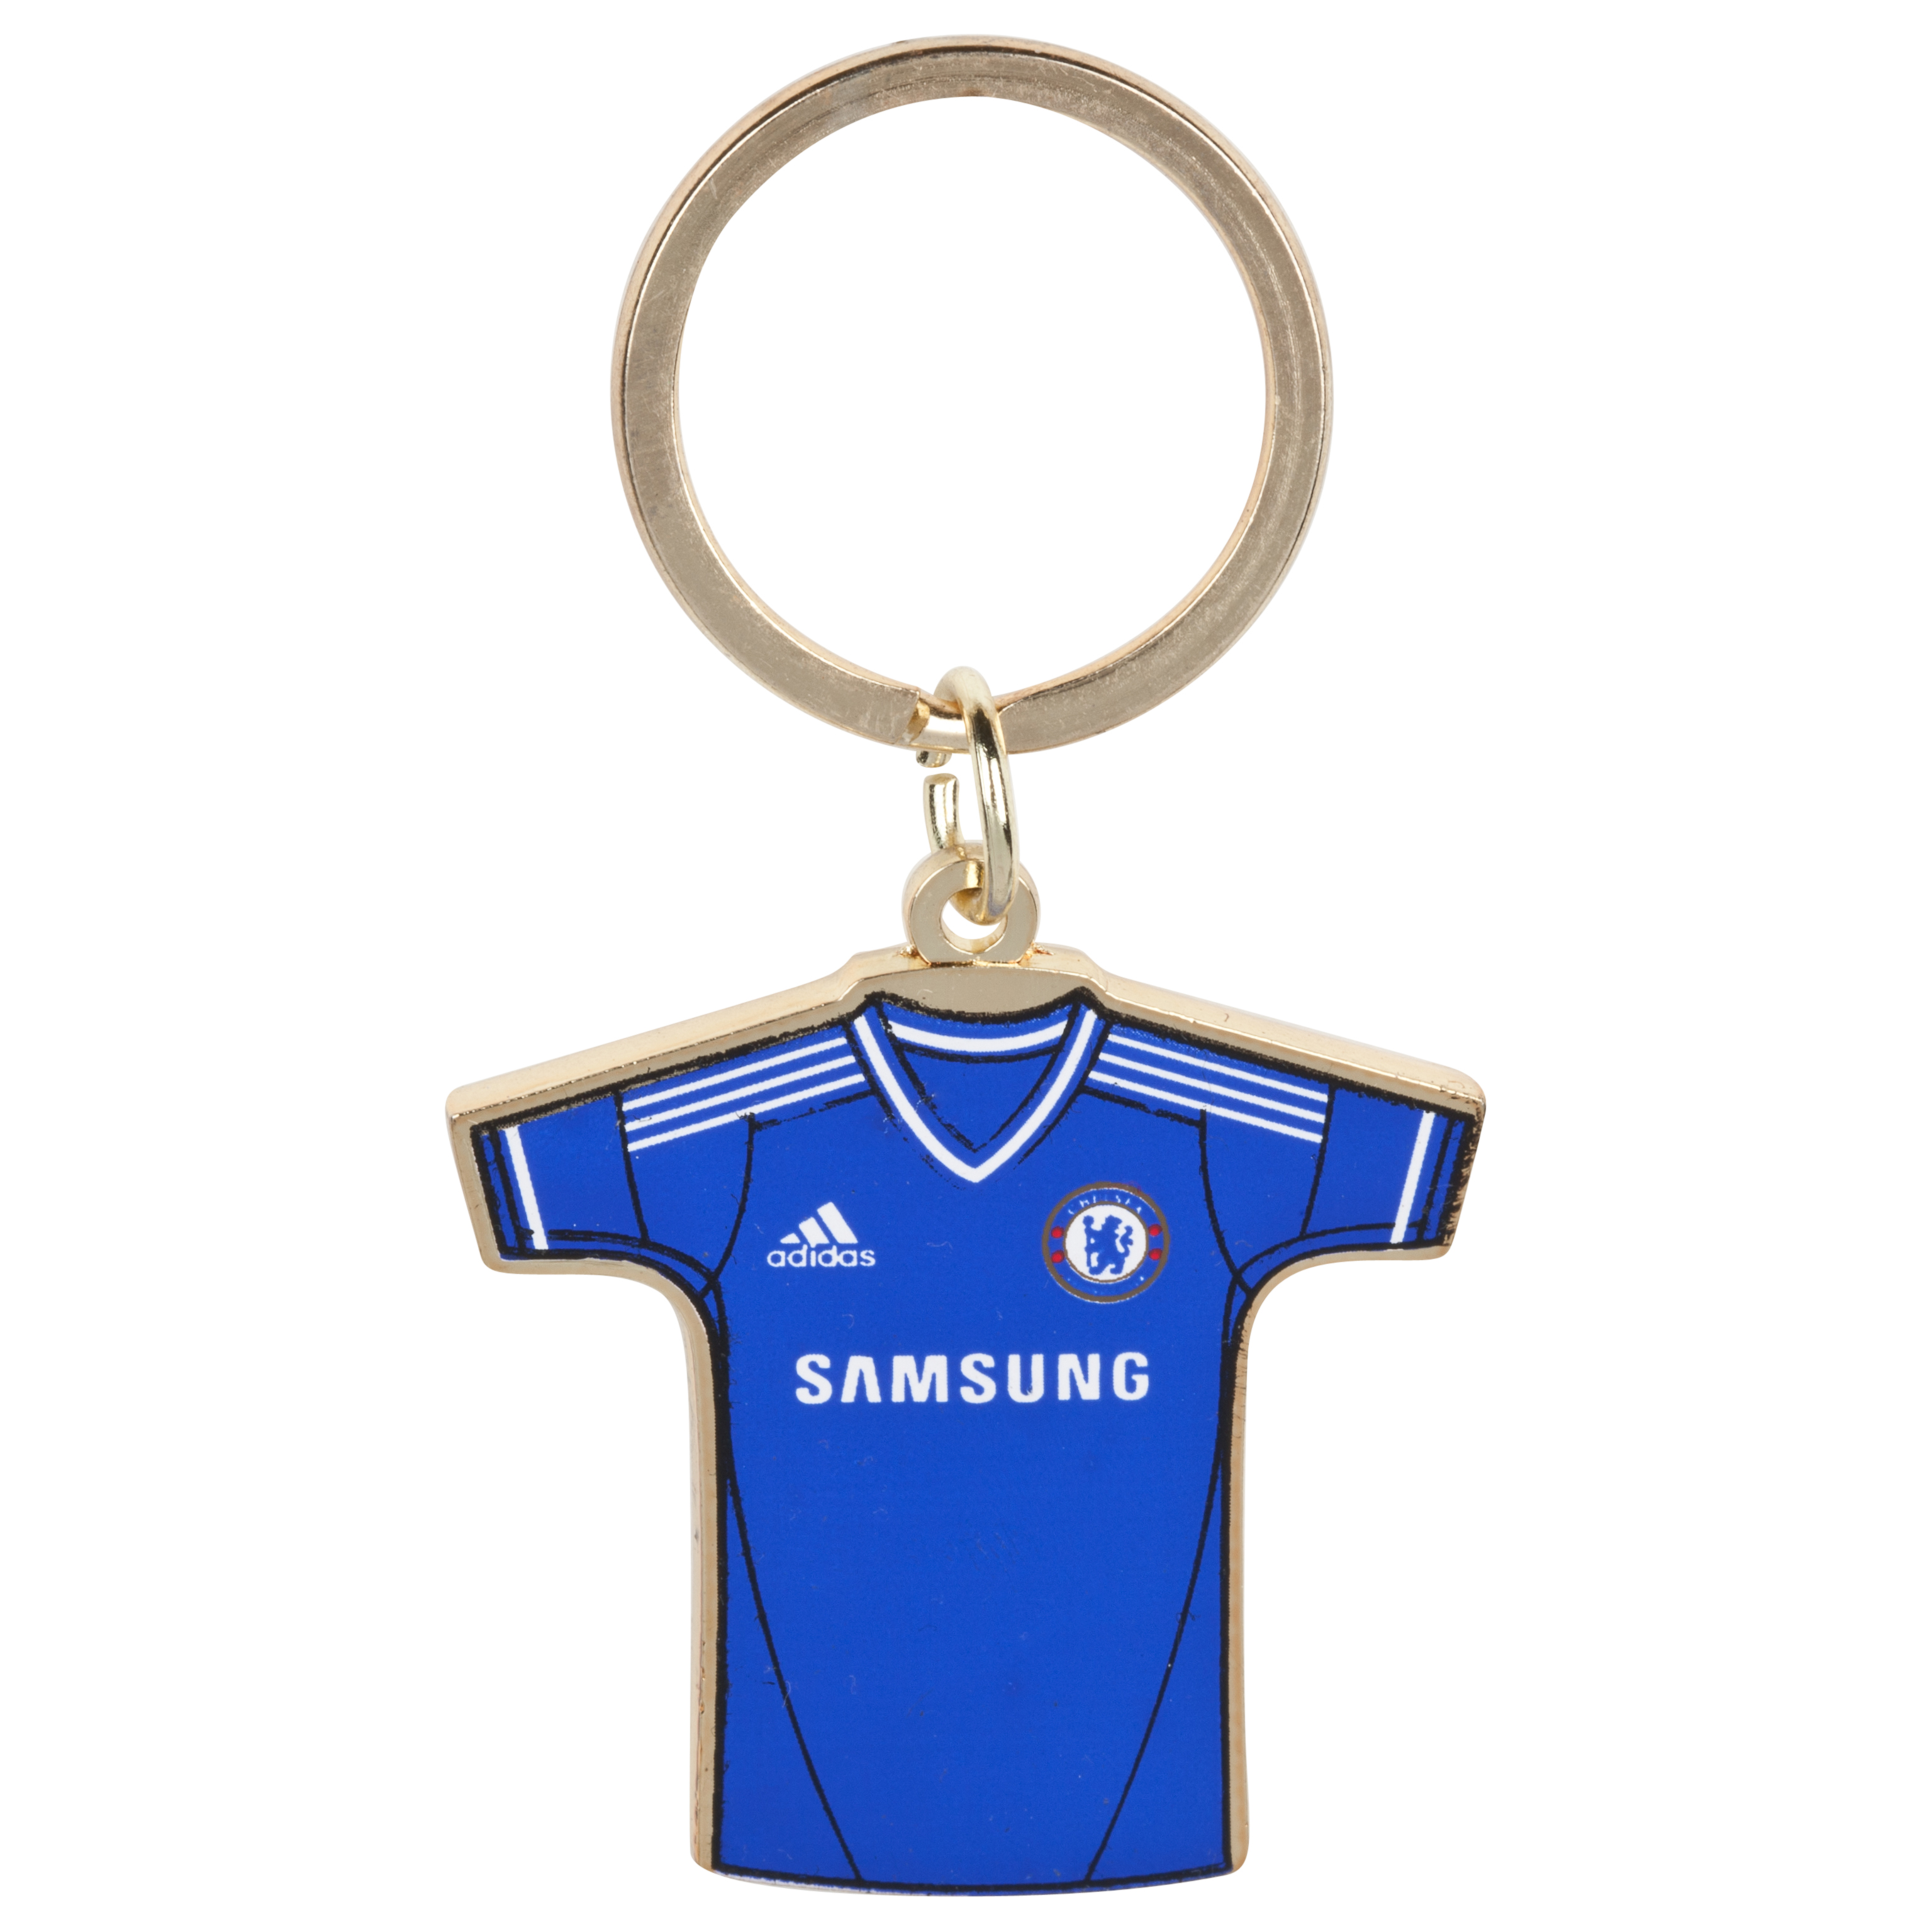 Chelsea 2013/14 Home kit Keyring